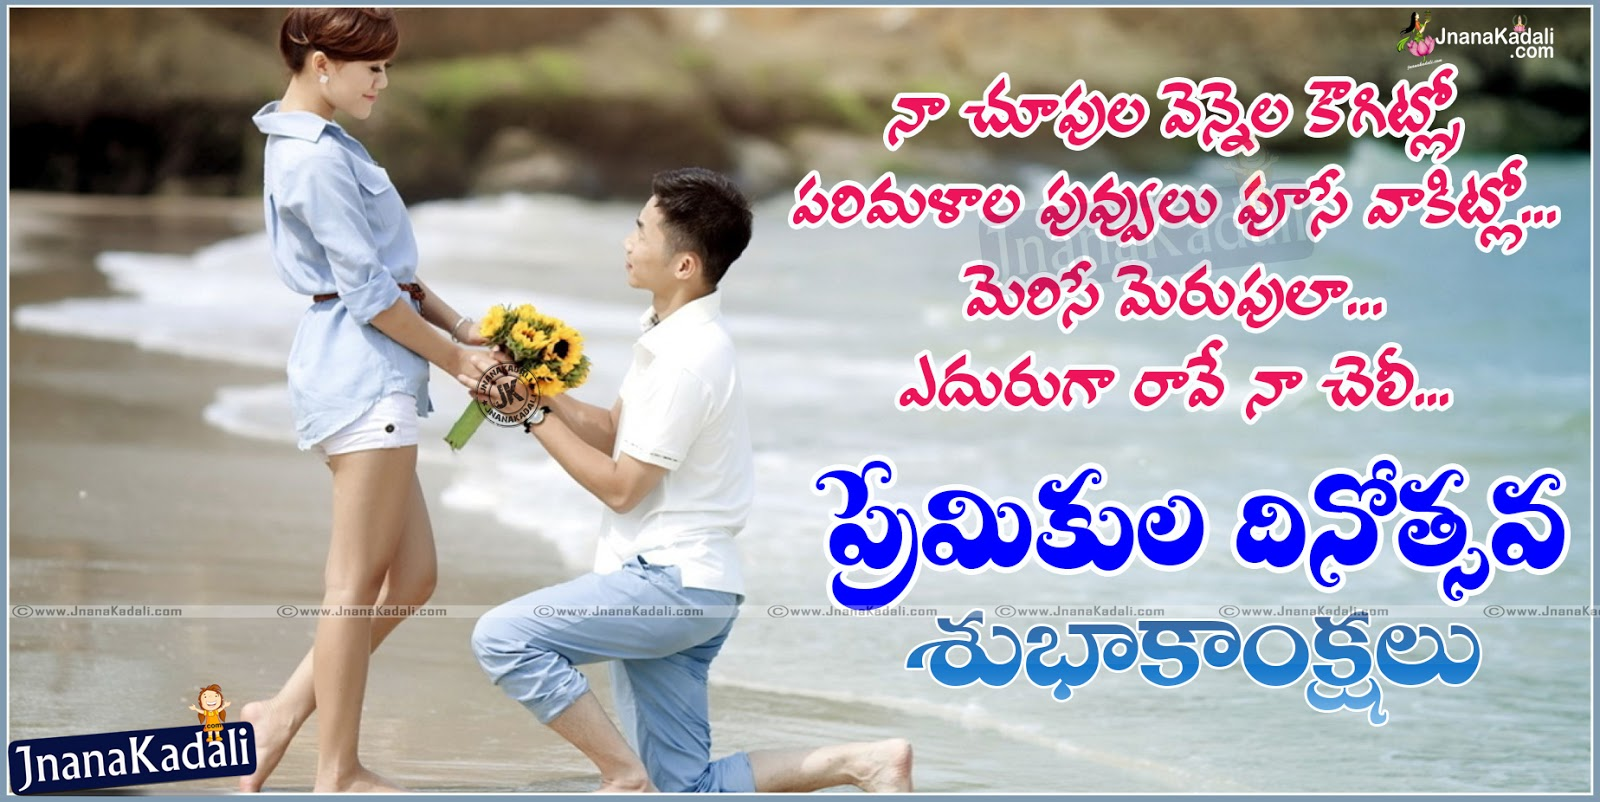 Valentines day special love quotes greetings wishes hd wallpapers here best telugu love quotations for valentines day february 14 valentines day quotes in telugu kristyandbryce Image collections